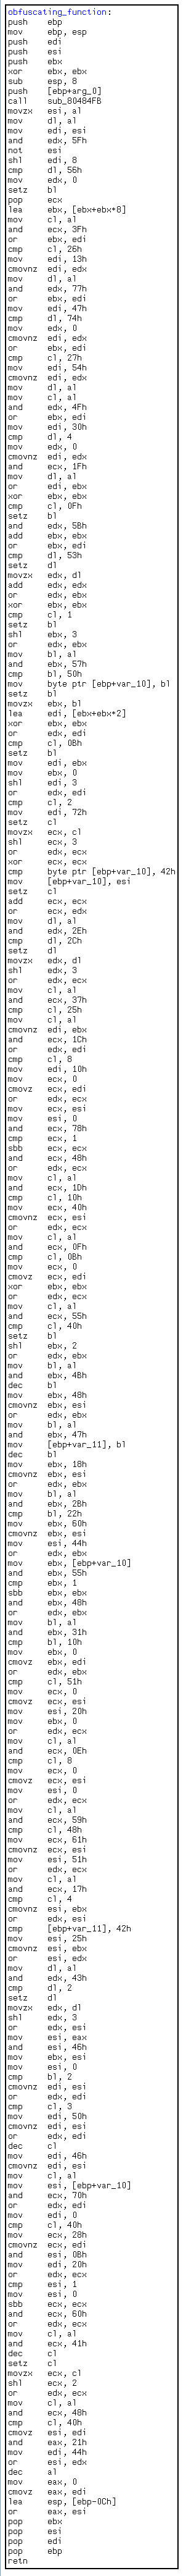 obfuscated_function